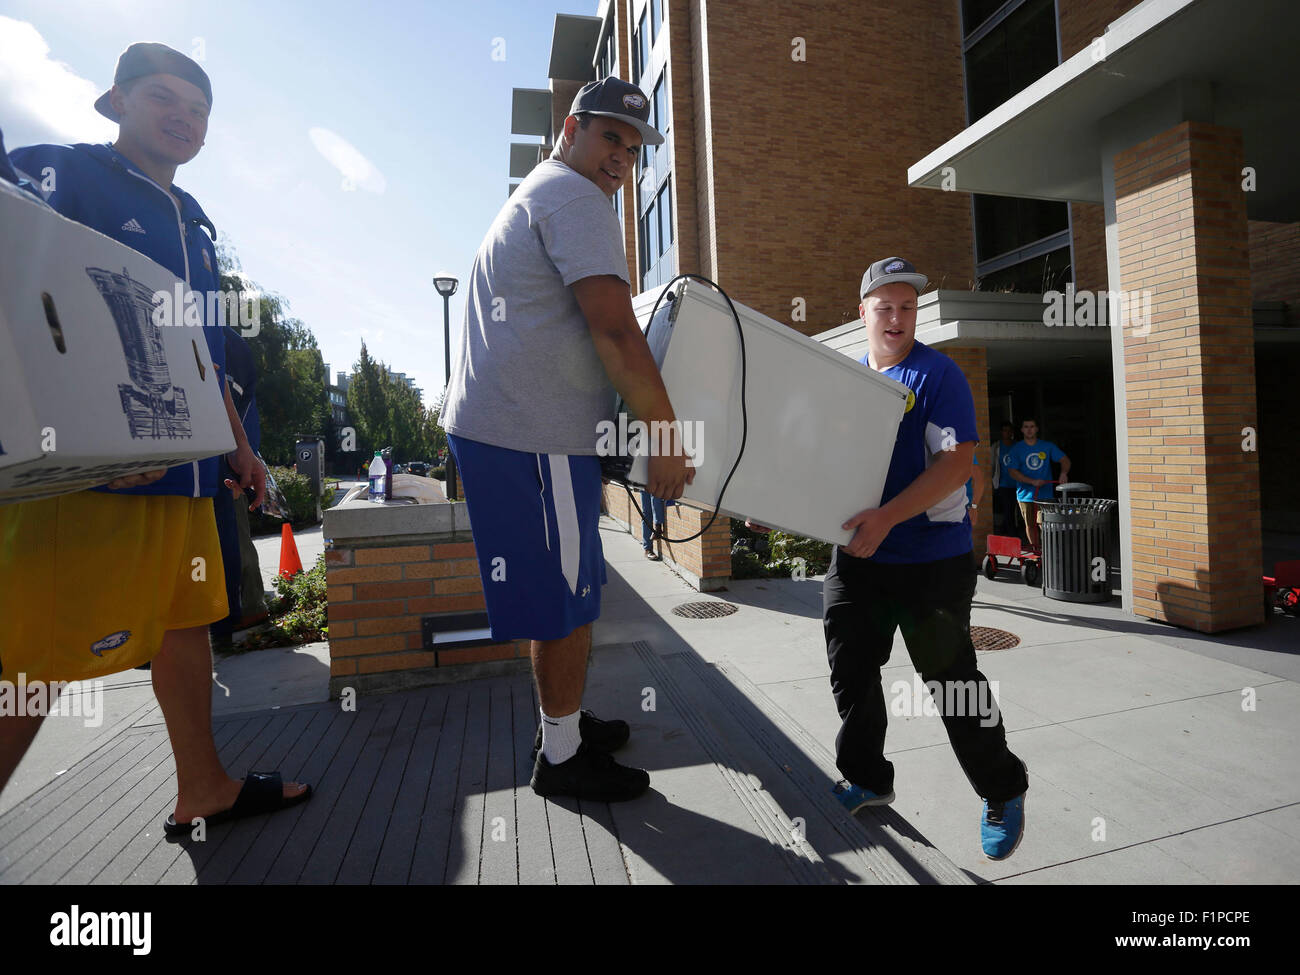 (150905) -- VANCOUVER, Sept. 5, 2015 (Xinhua) -- University students transport some home appliances into campus - Stock Image